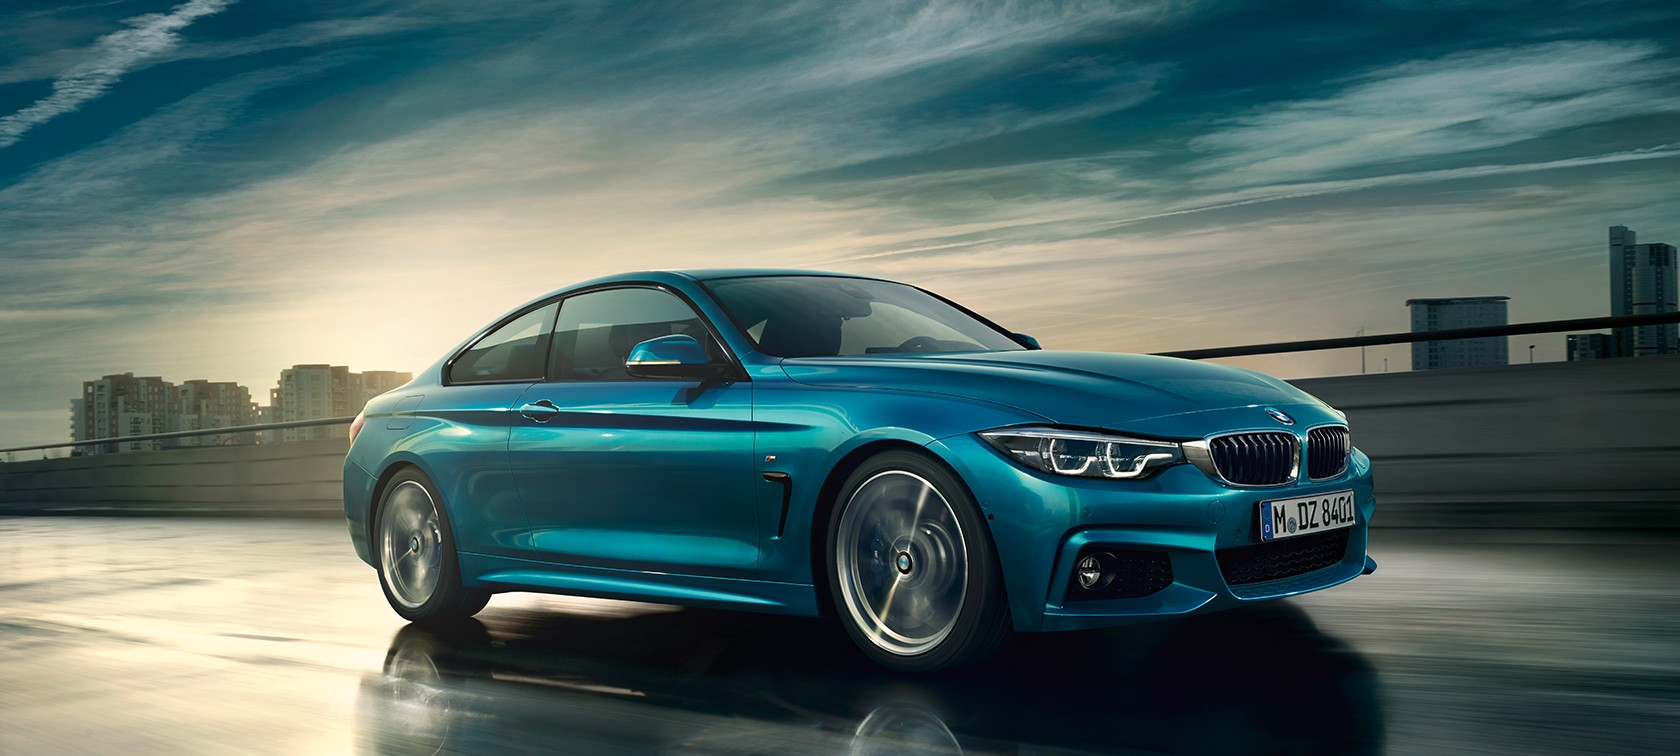 BMW 4 Series Coupe At A Glance